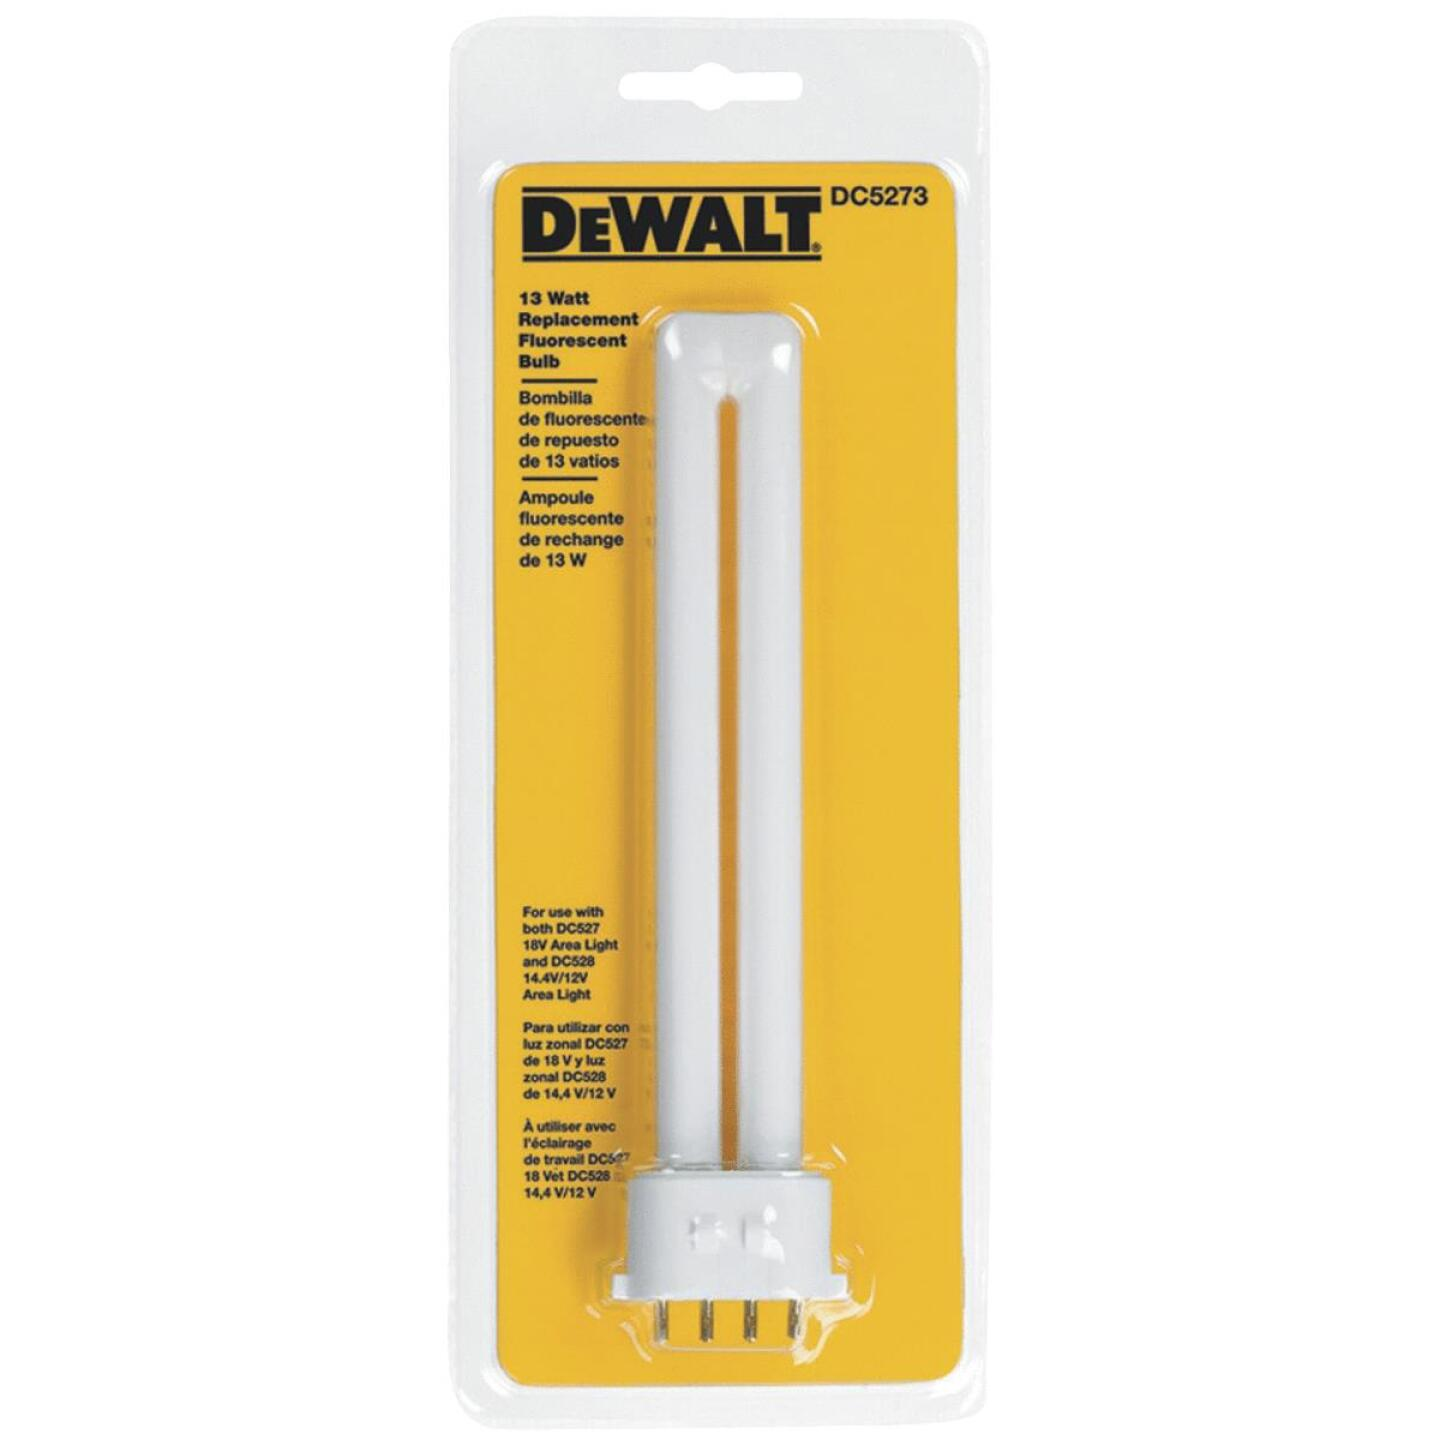 DeWalt 13W Fluorescent Replacement Flashlight Bulb Image 1